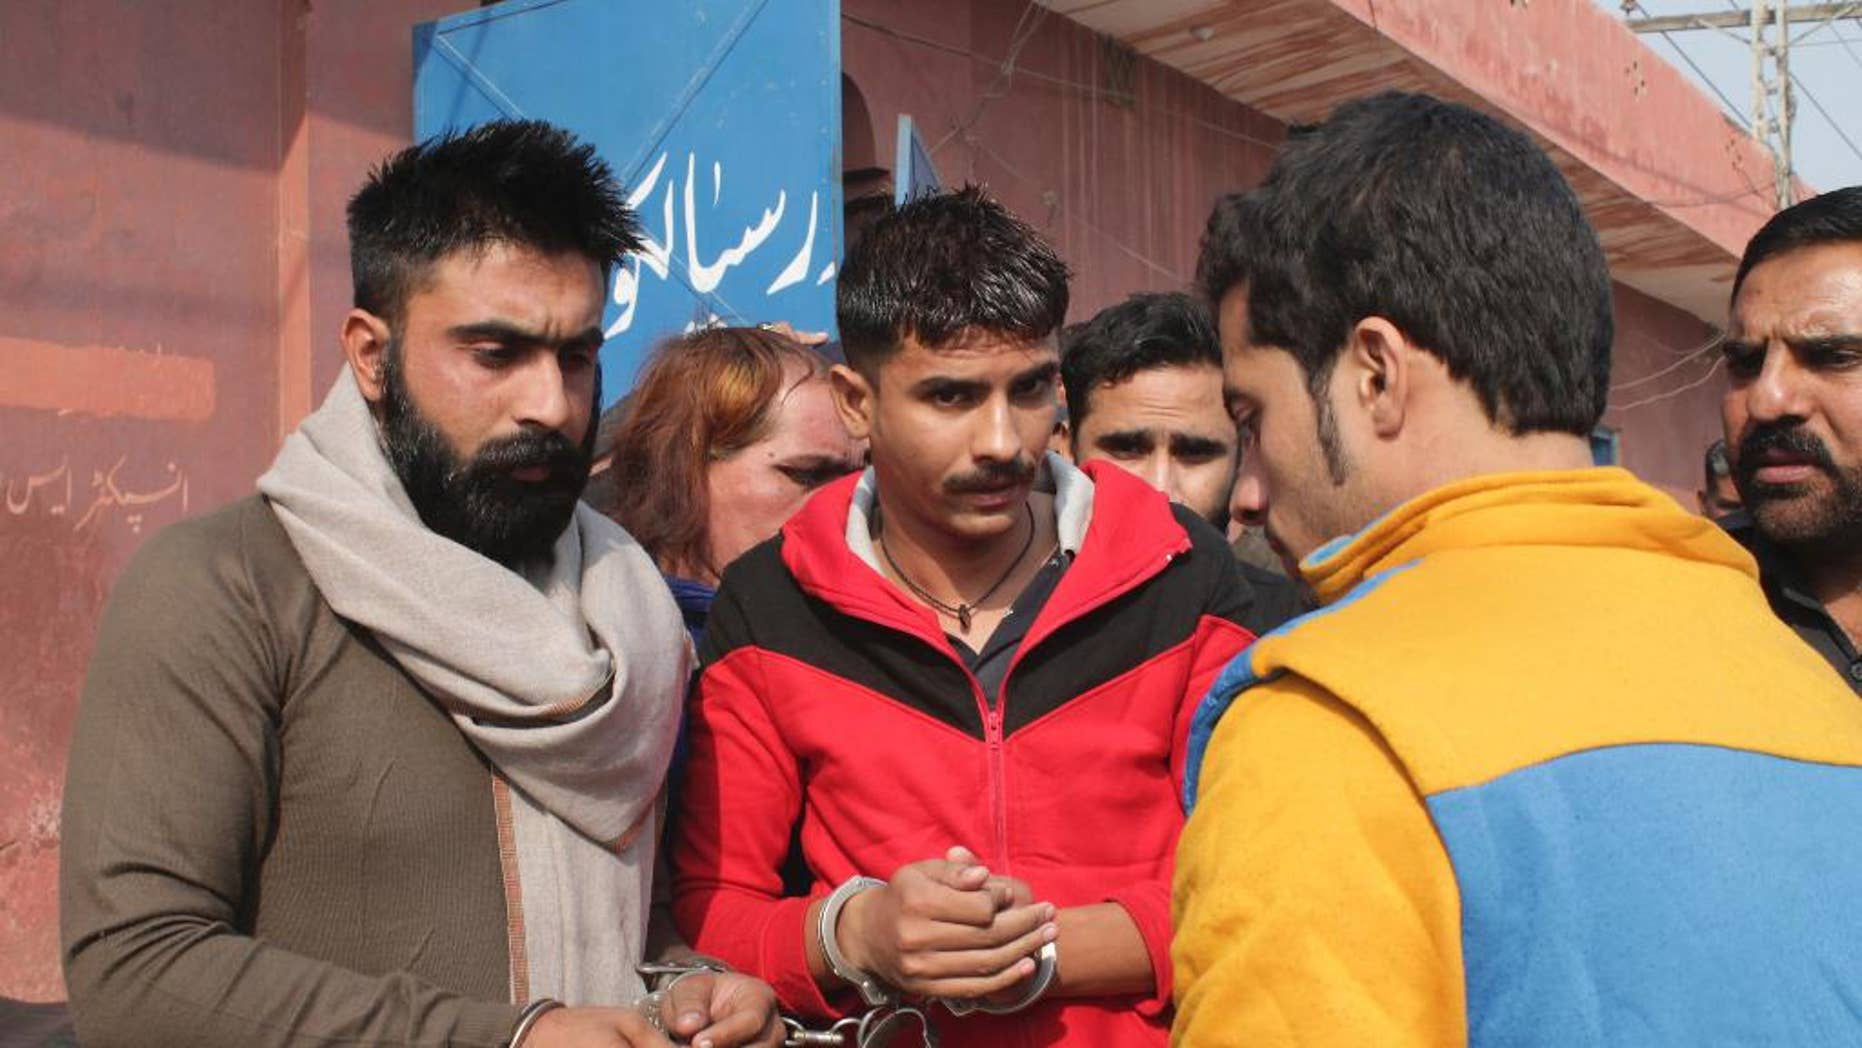 People allegedly involved in the flogging of a transgender person arrive at a court in Sialkot, Pakistan, Monday, Nov. 14, 2016. A Pakistani officer said police have arrested 10 members of a criminal gang who flogged a transgender person and posted the incident on social media. The officer said Monday's arrests were made in the eastern Pakistani city of Sialkot after a video of the flogging was shared thousands of times on social media. (AP Photo/Shahid Ikram)